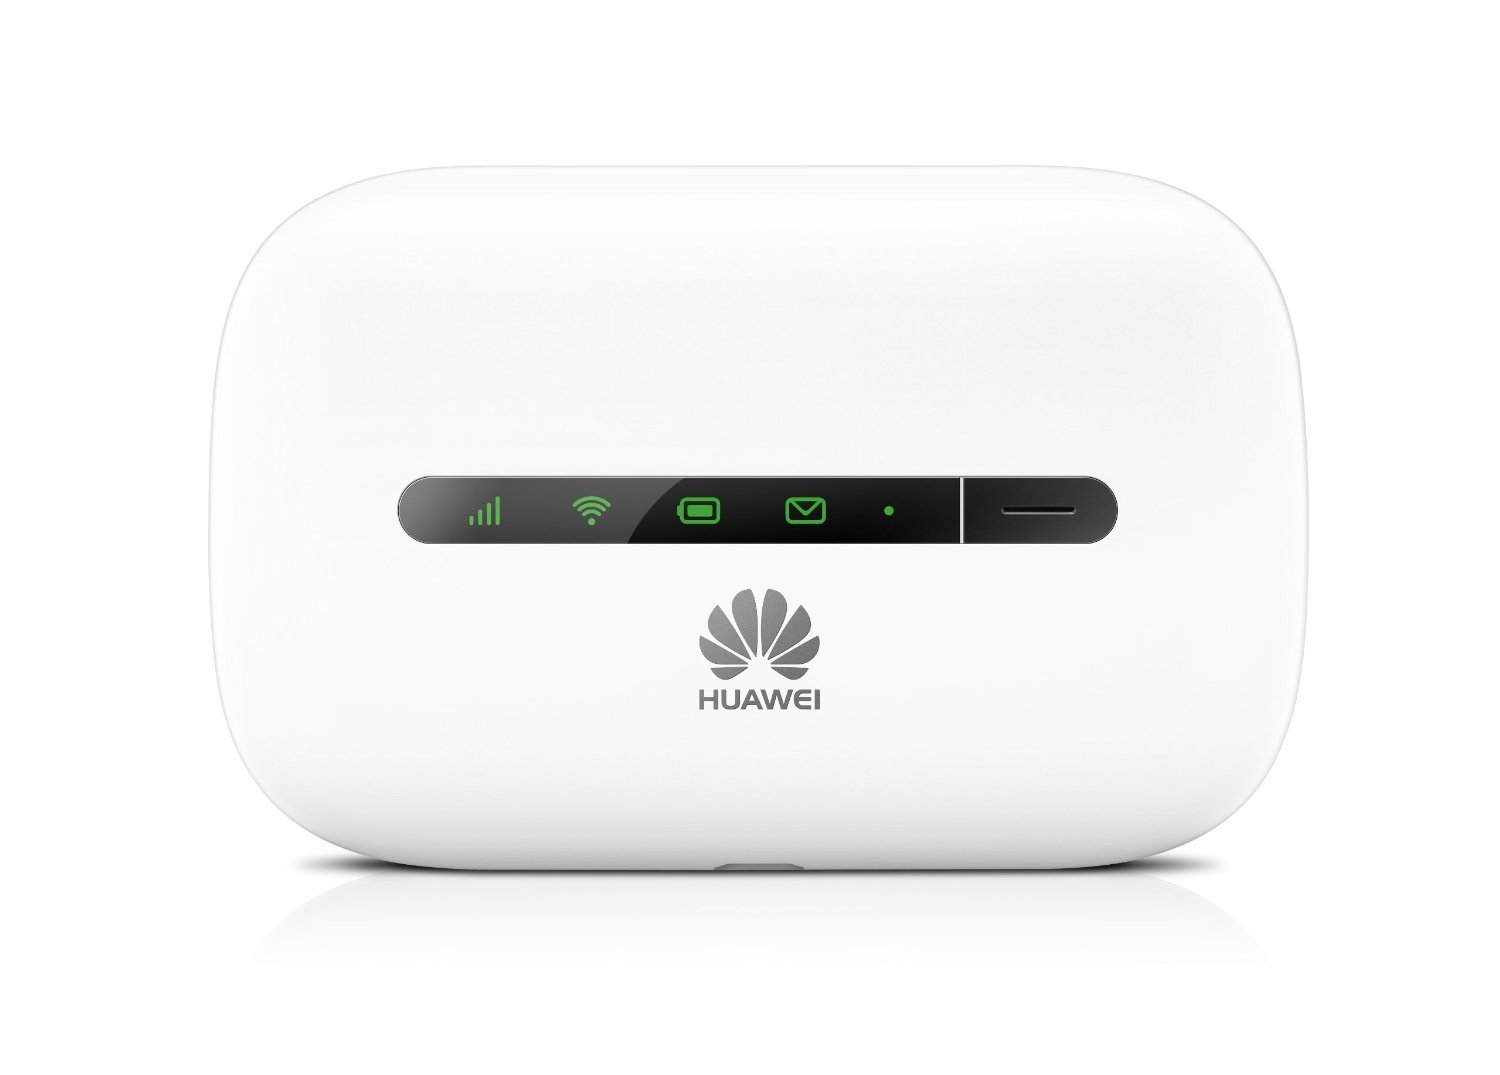 Huawei E5330Bs-6, 21Mbps 3G/4G Unlocked Mobile WiFi Hotspot (3G in the USA (AT&T, T-Mobile), Europe, Asia, Middle East, Africa, Venezuela) OEM, ORIGINAL from Huawei by HUAWEI